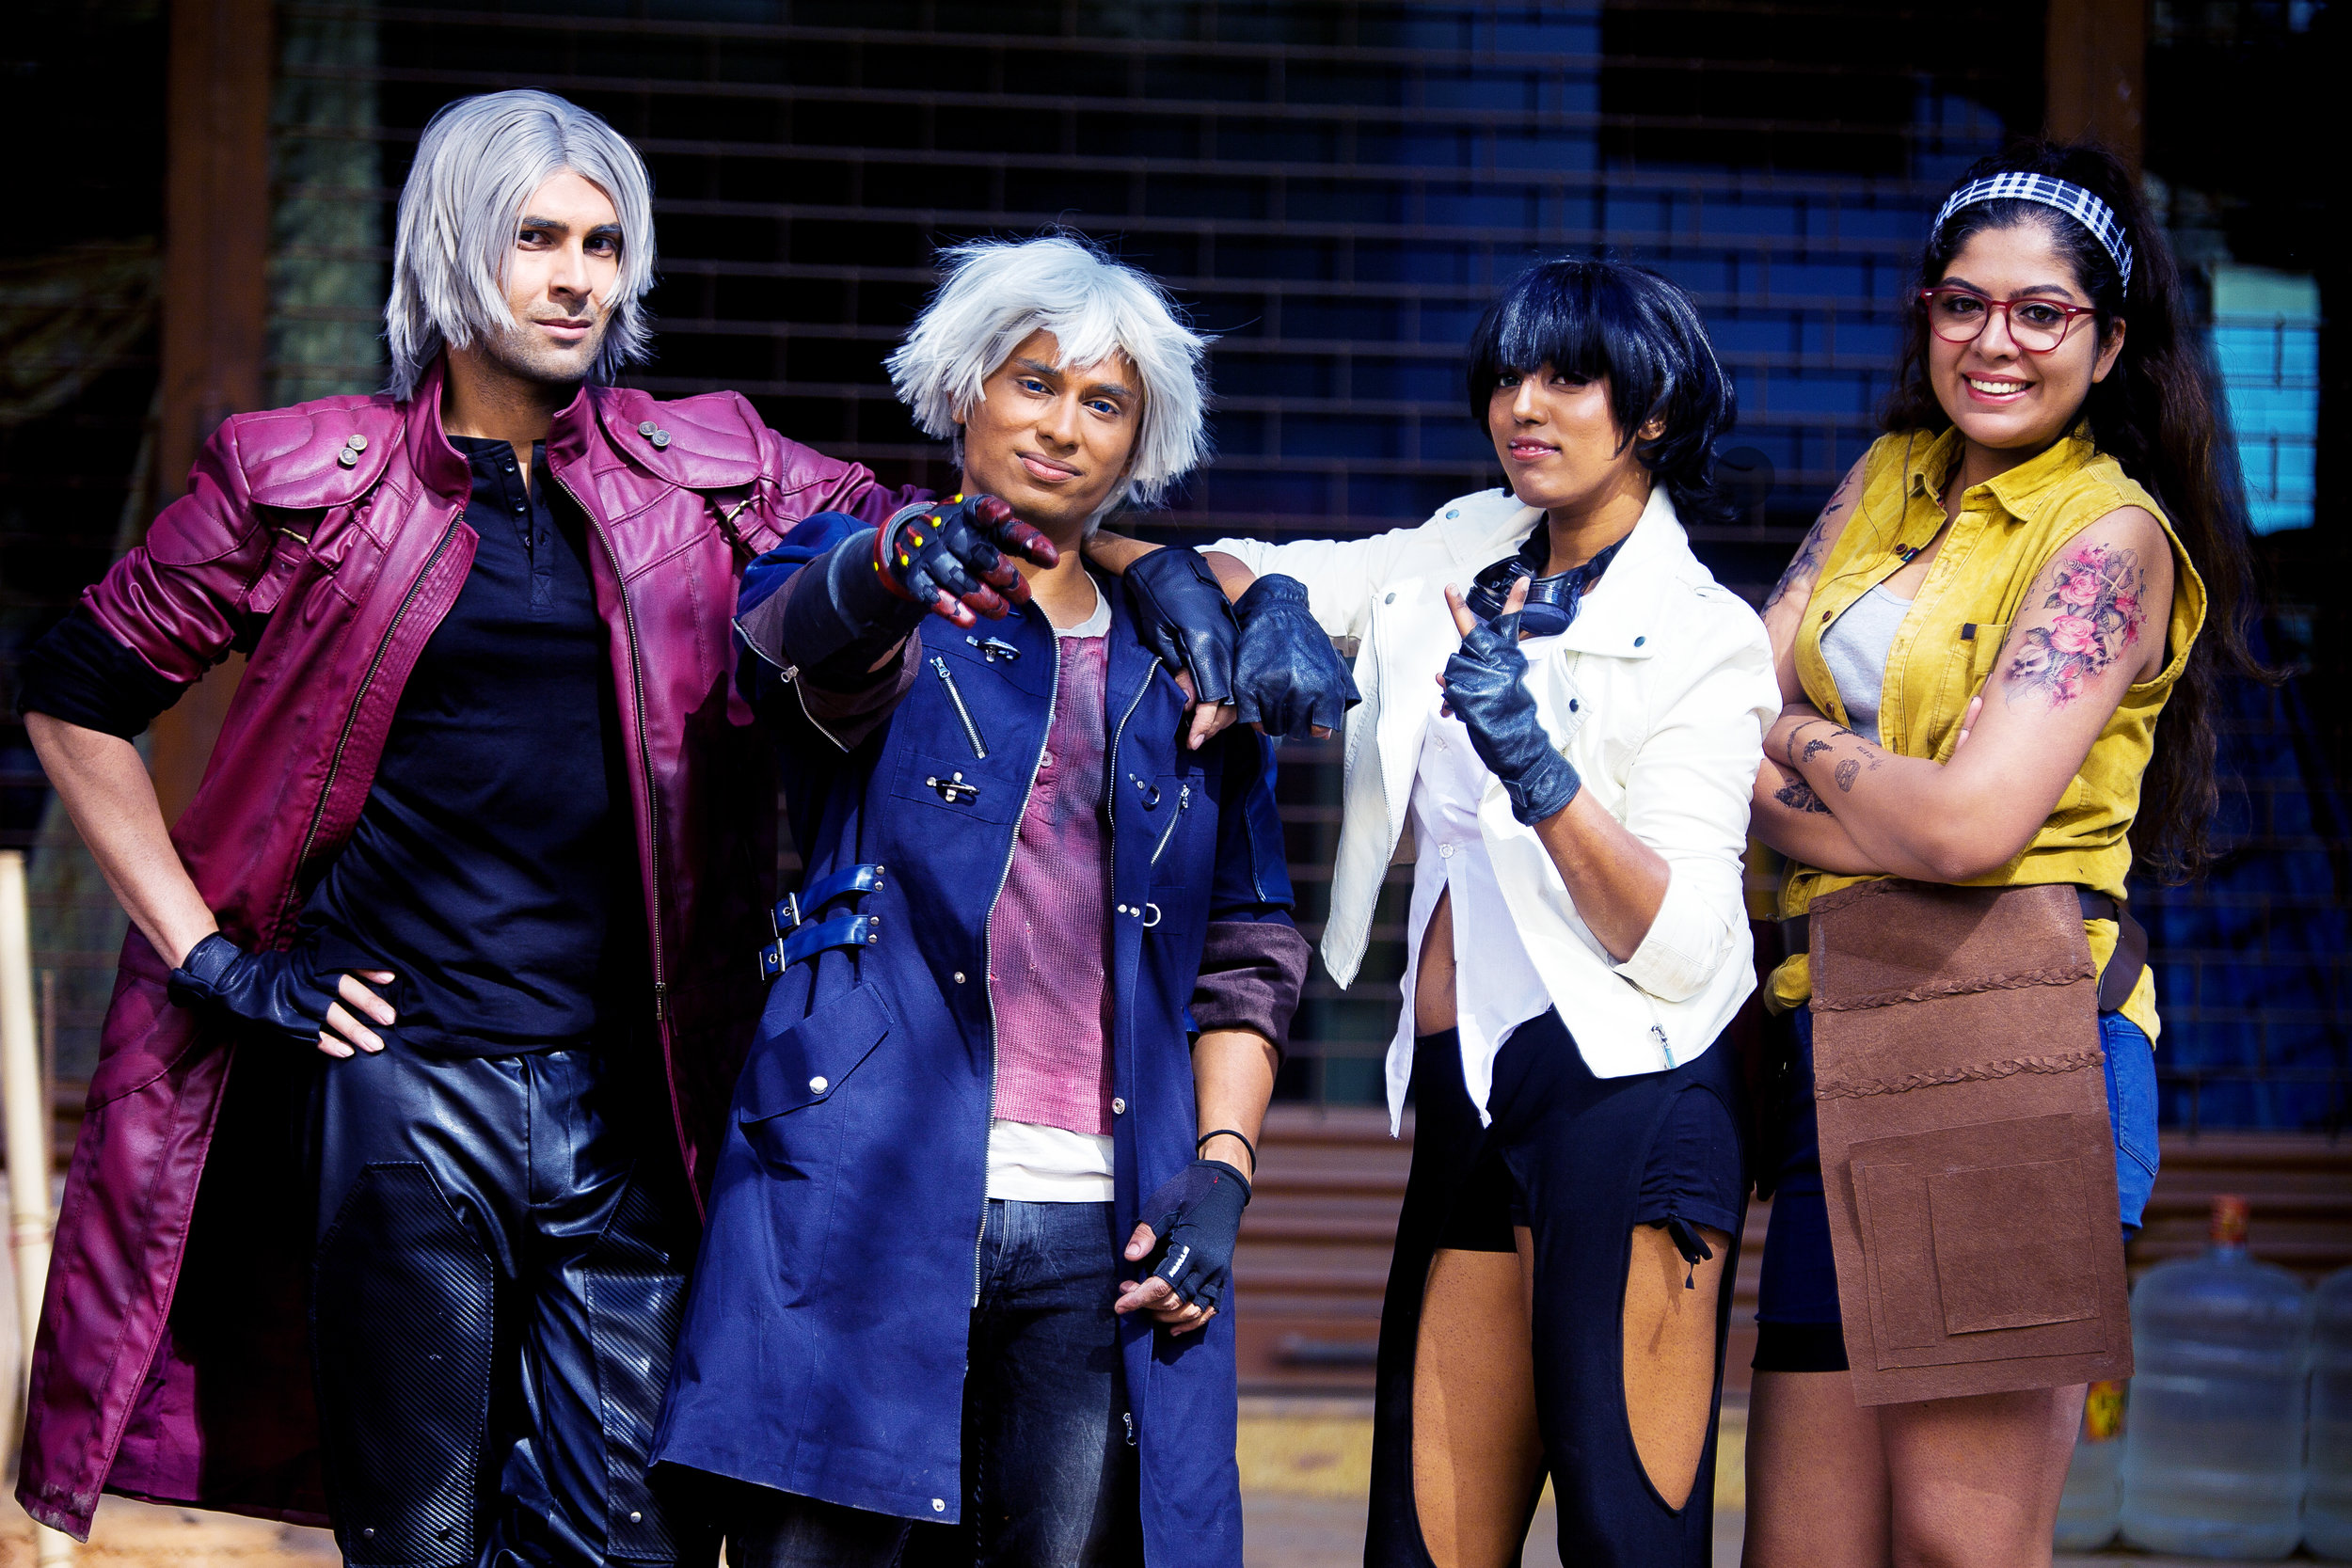 Devil may cry cosplay shoot in India indian cosplayers